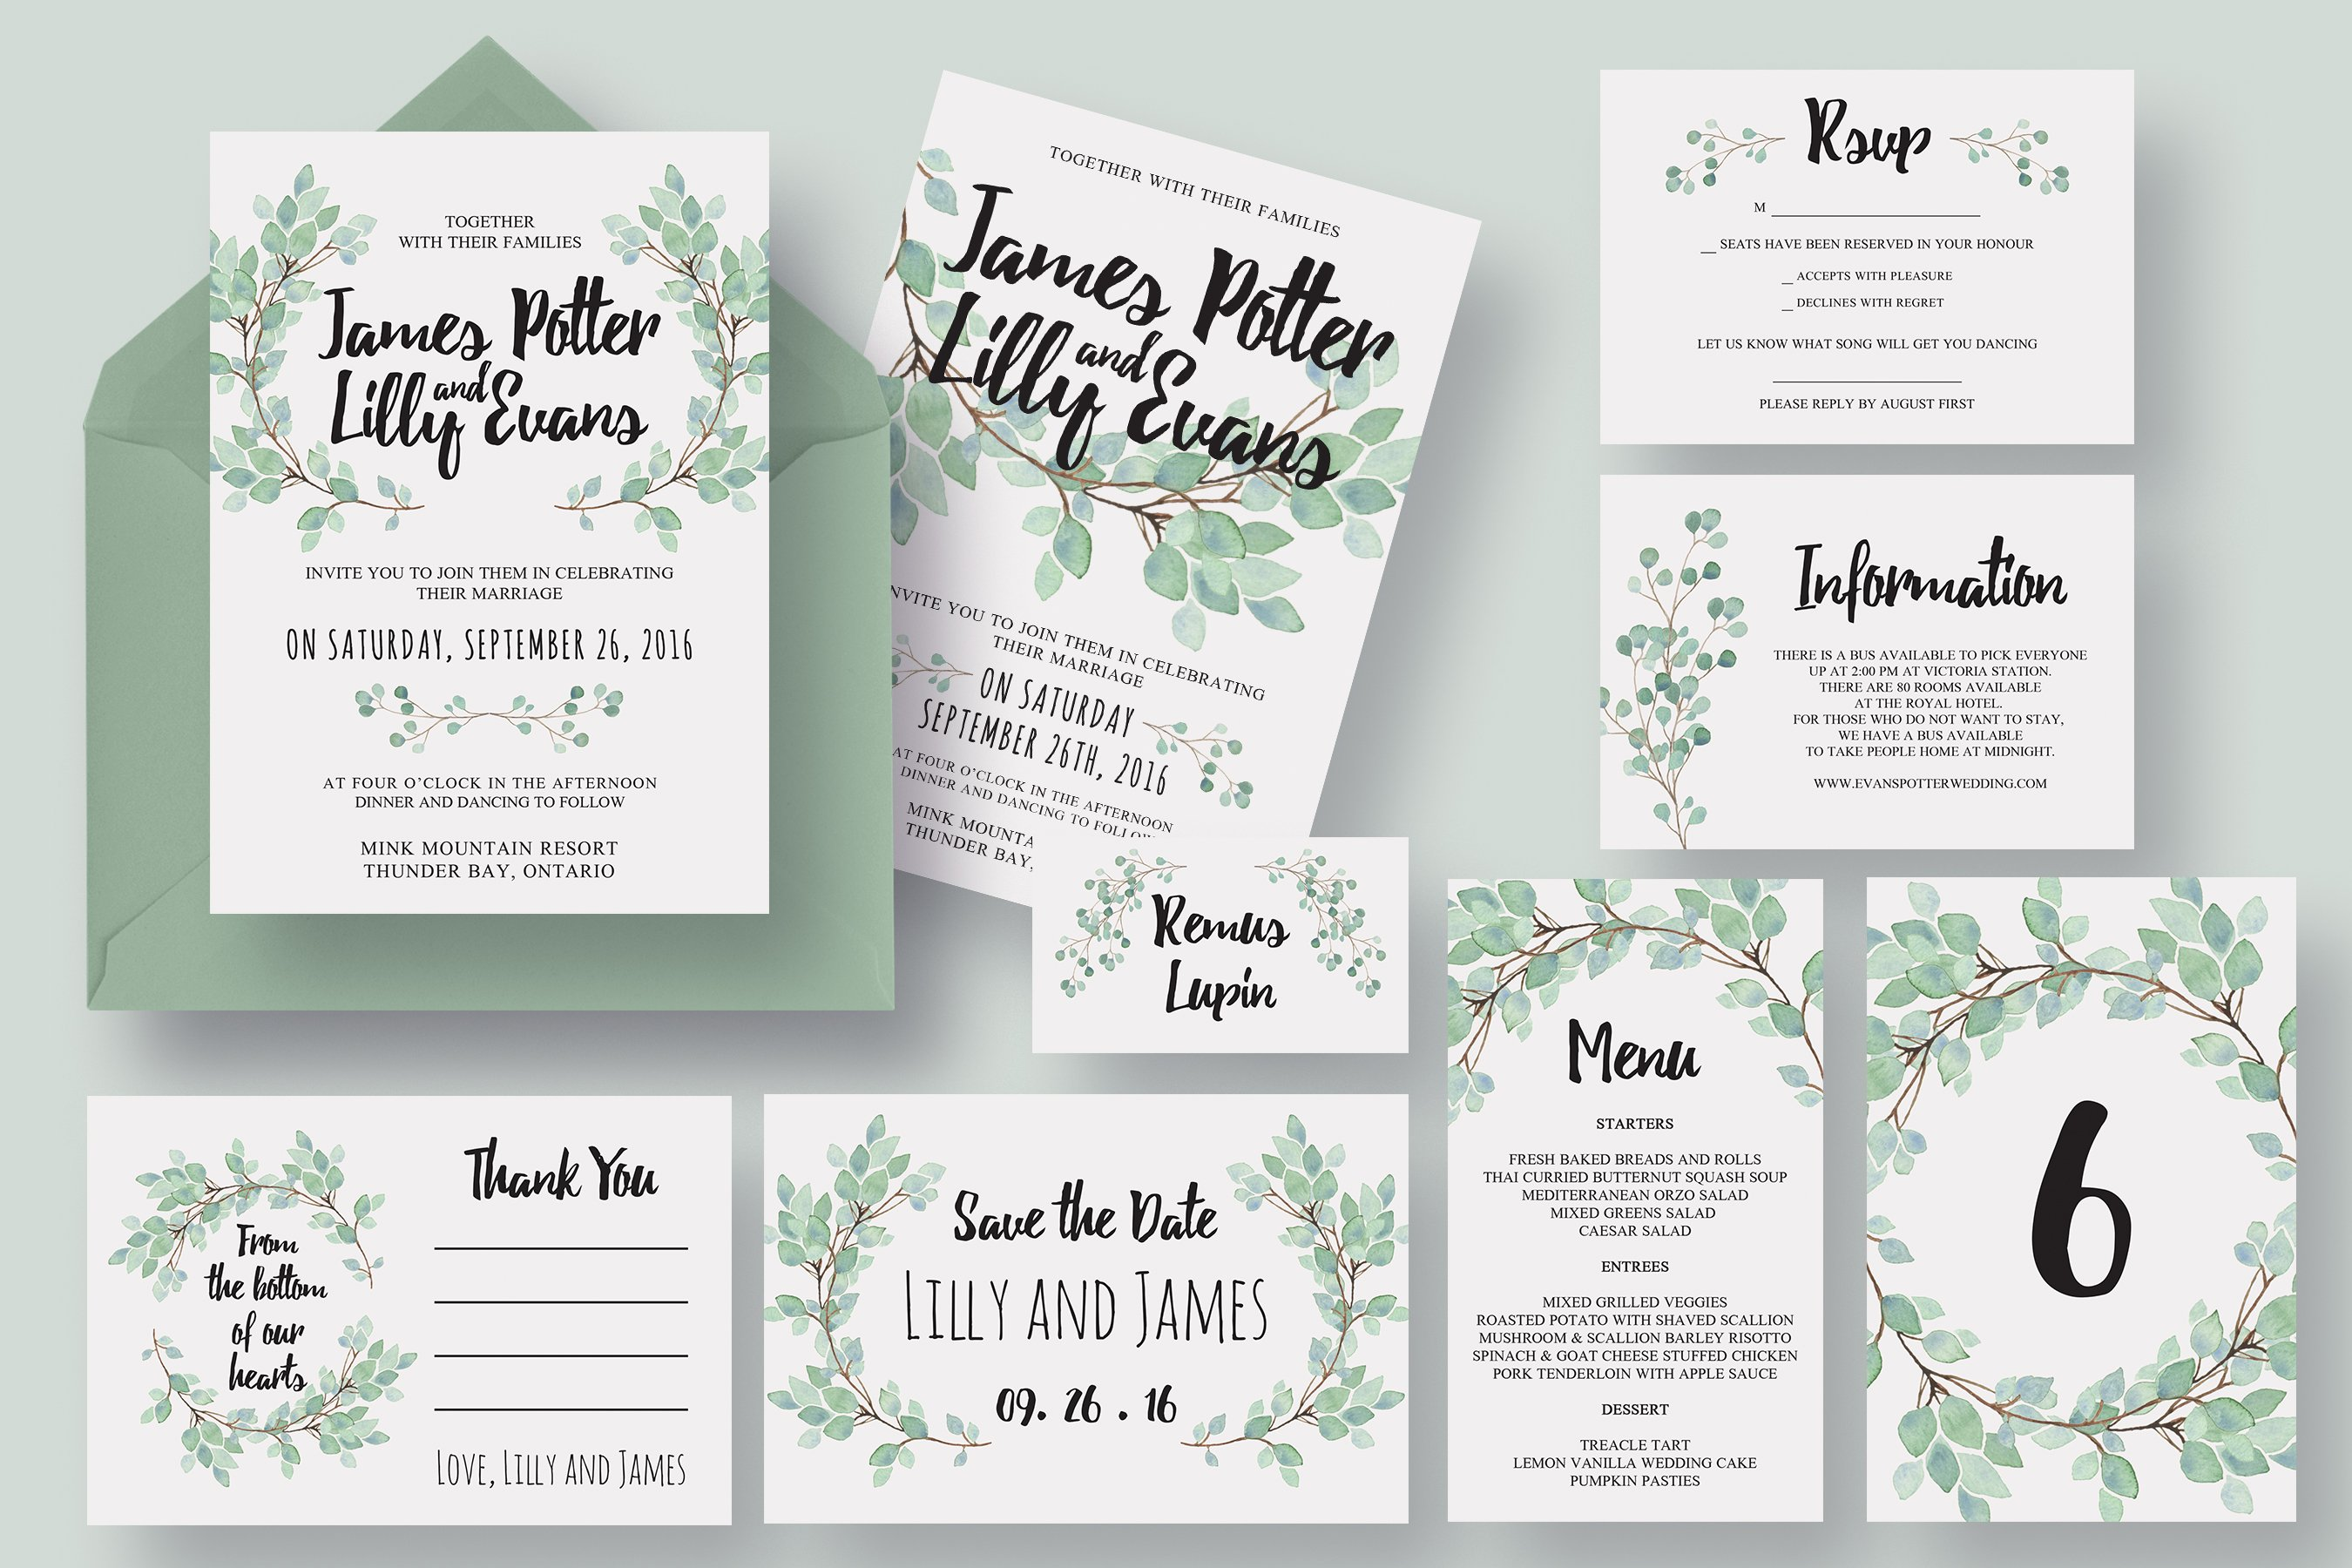 Eucalyptus wedding invitation suite invitation templates eucalyptus wedding invitation suite invitation templates creative market filmwisefo